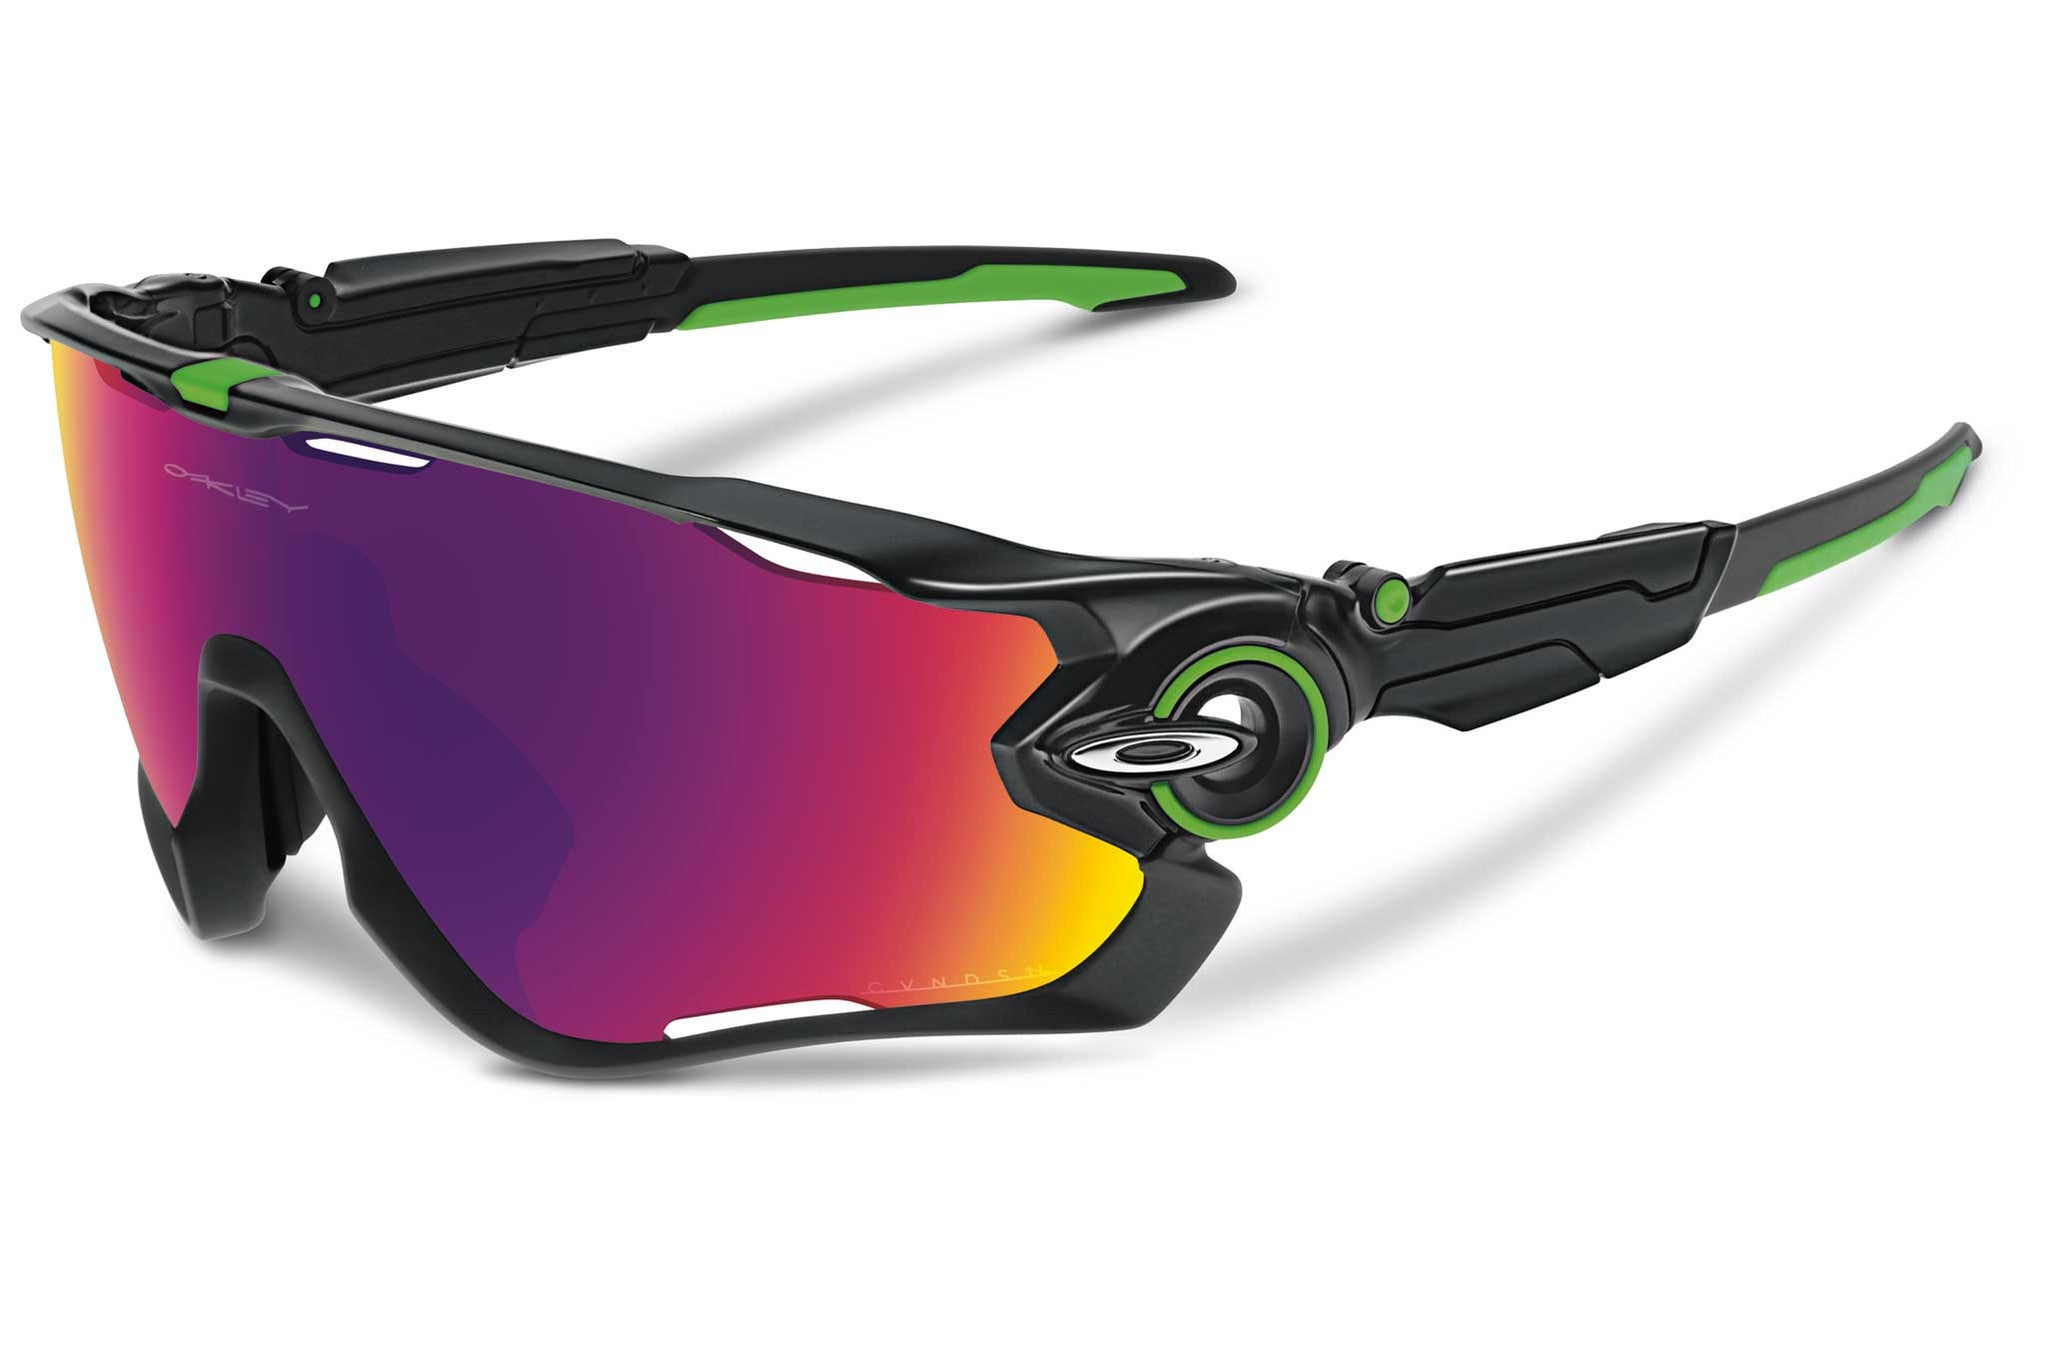 Oakley Jawbreaker Cavendish Polished Black w/ Prizm Sunglasses - Racer Sportif